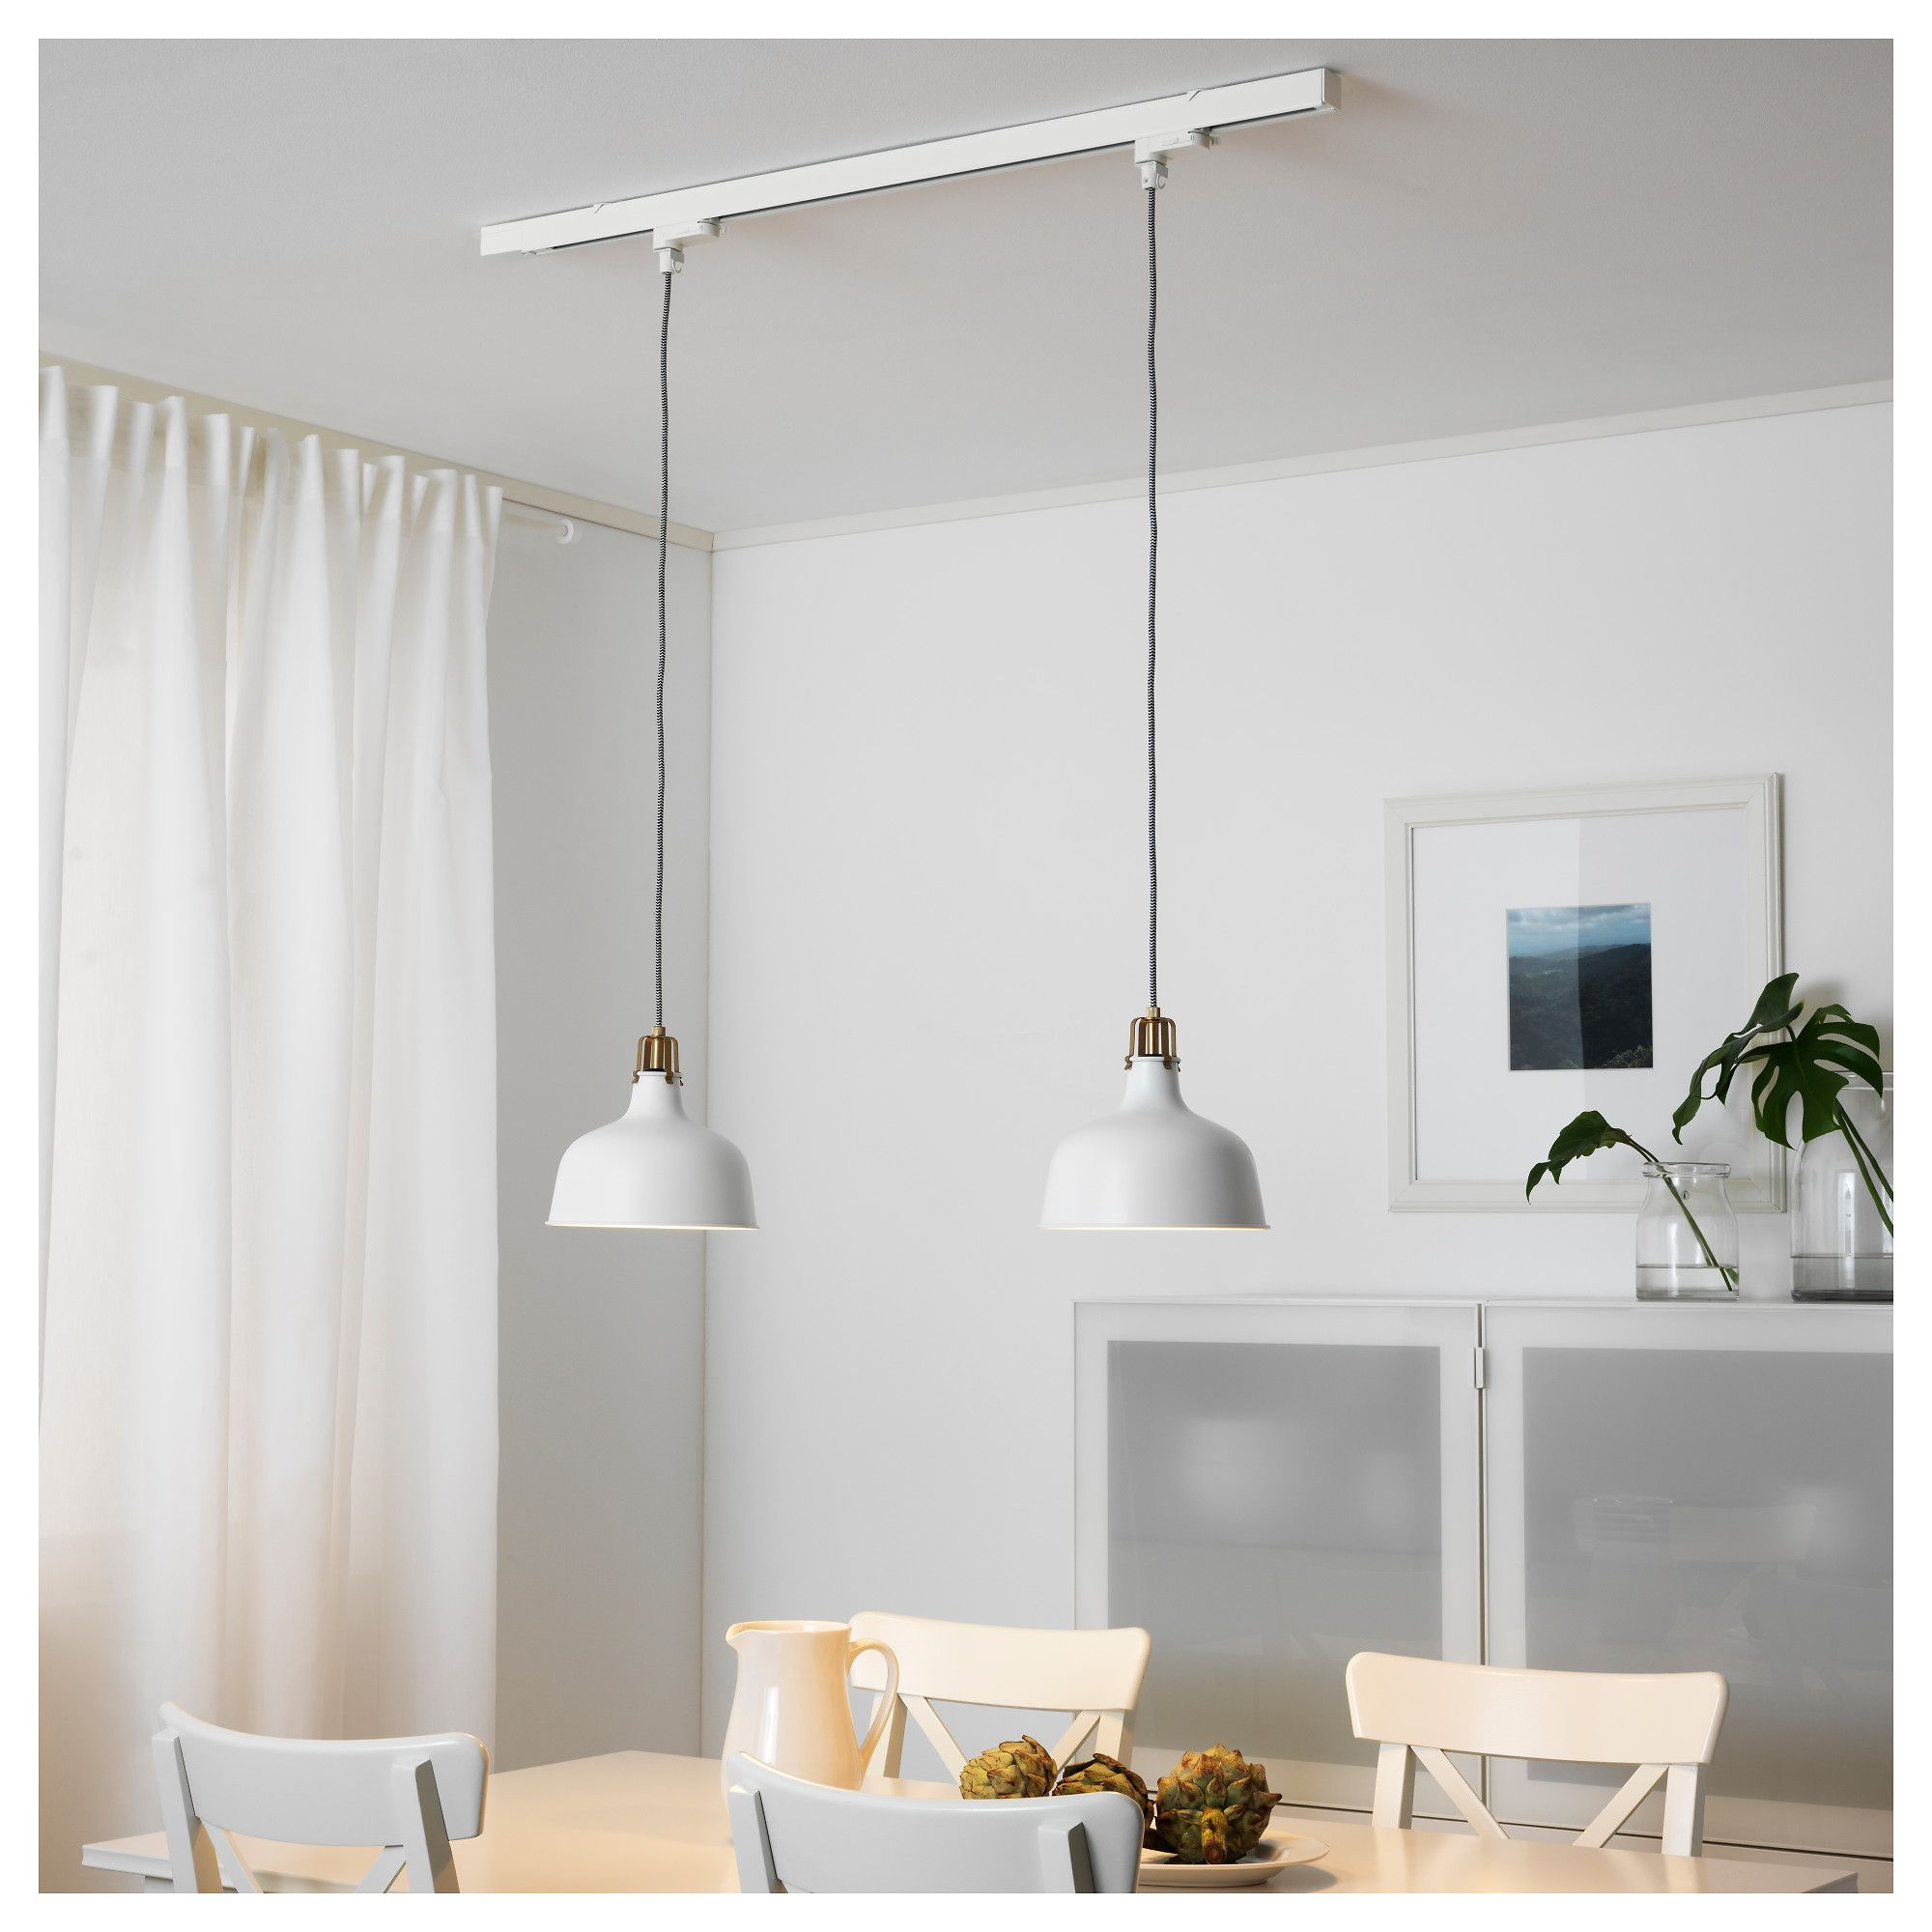 Image Result For Ranarp Ceiling Track House Kitchen In